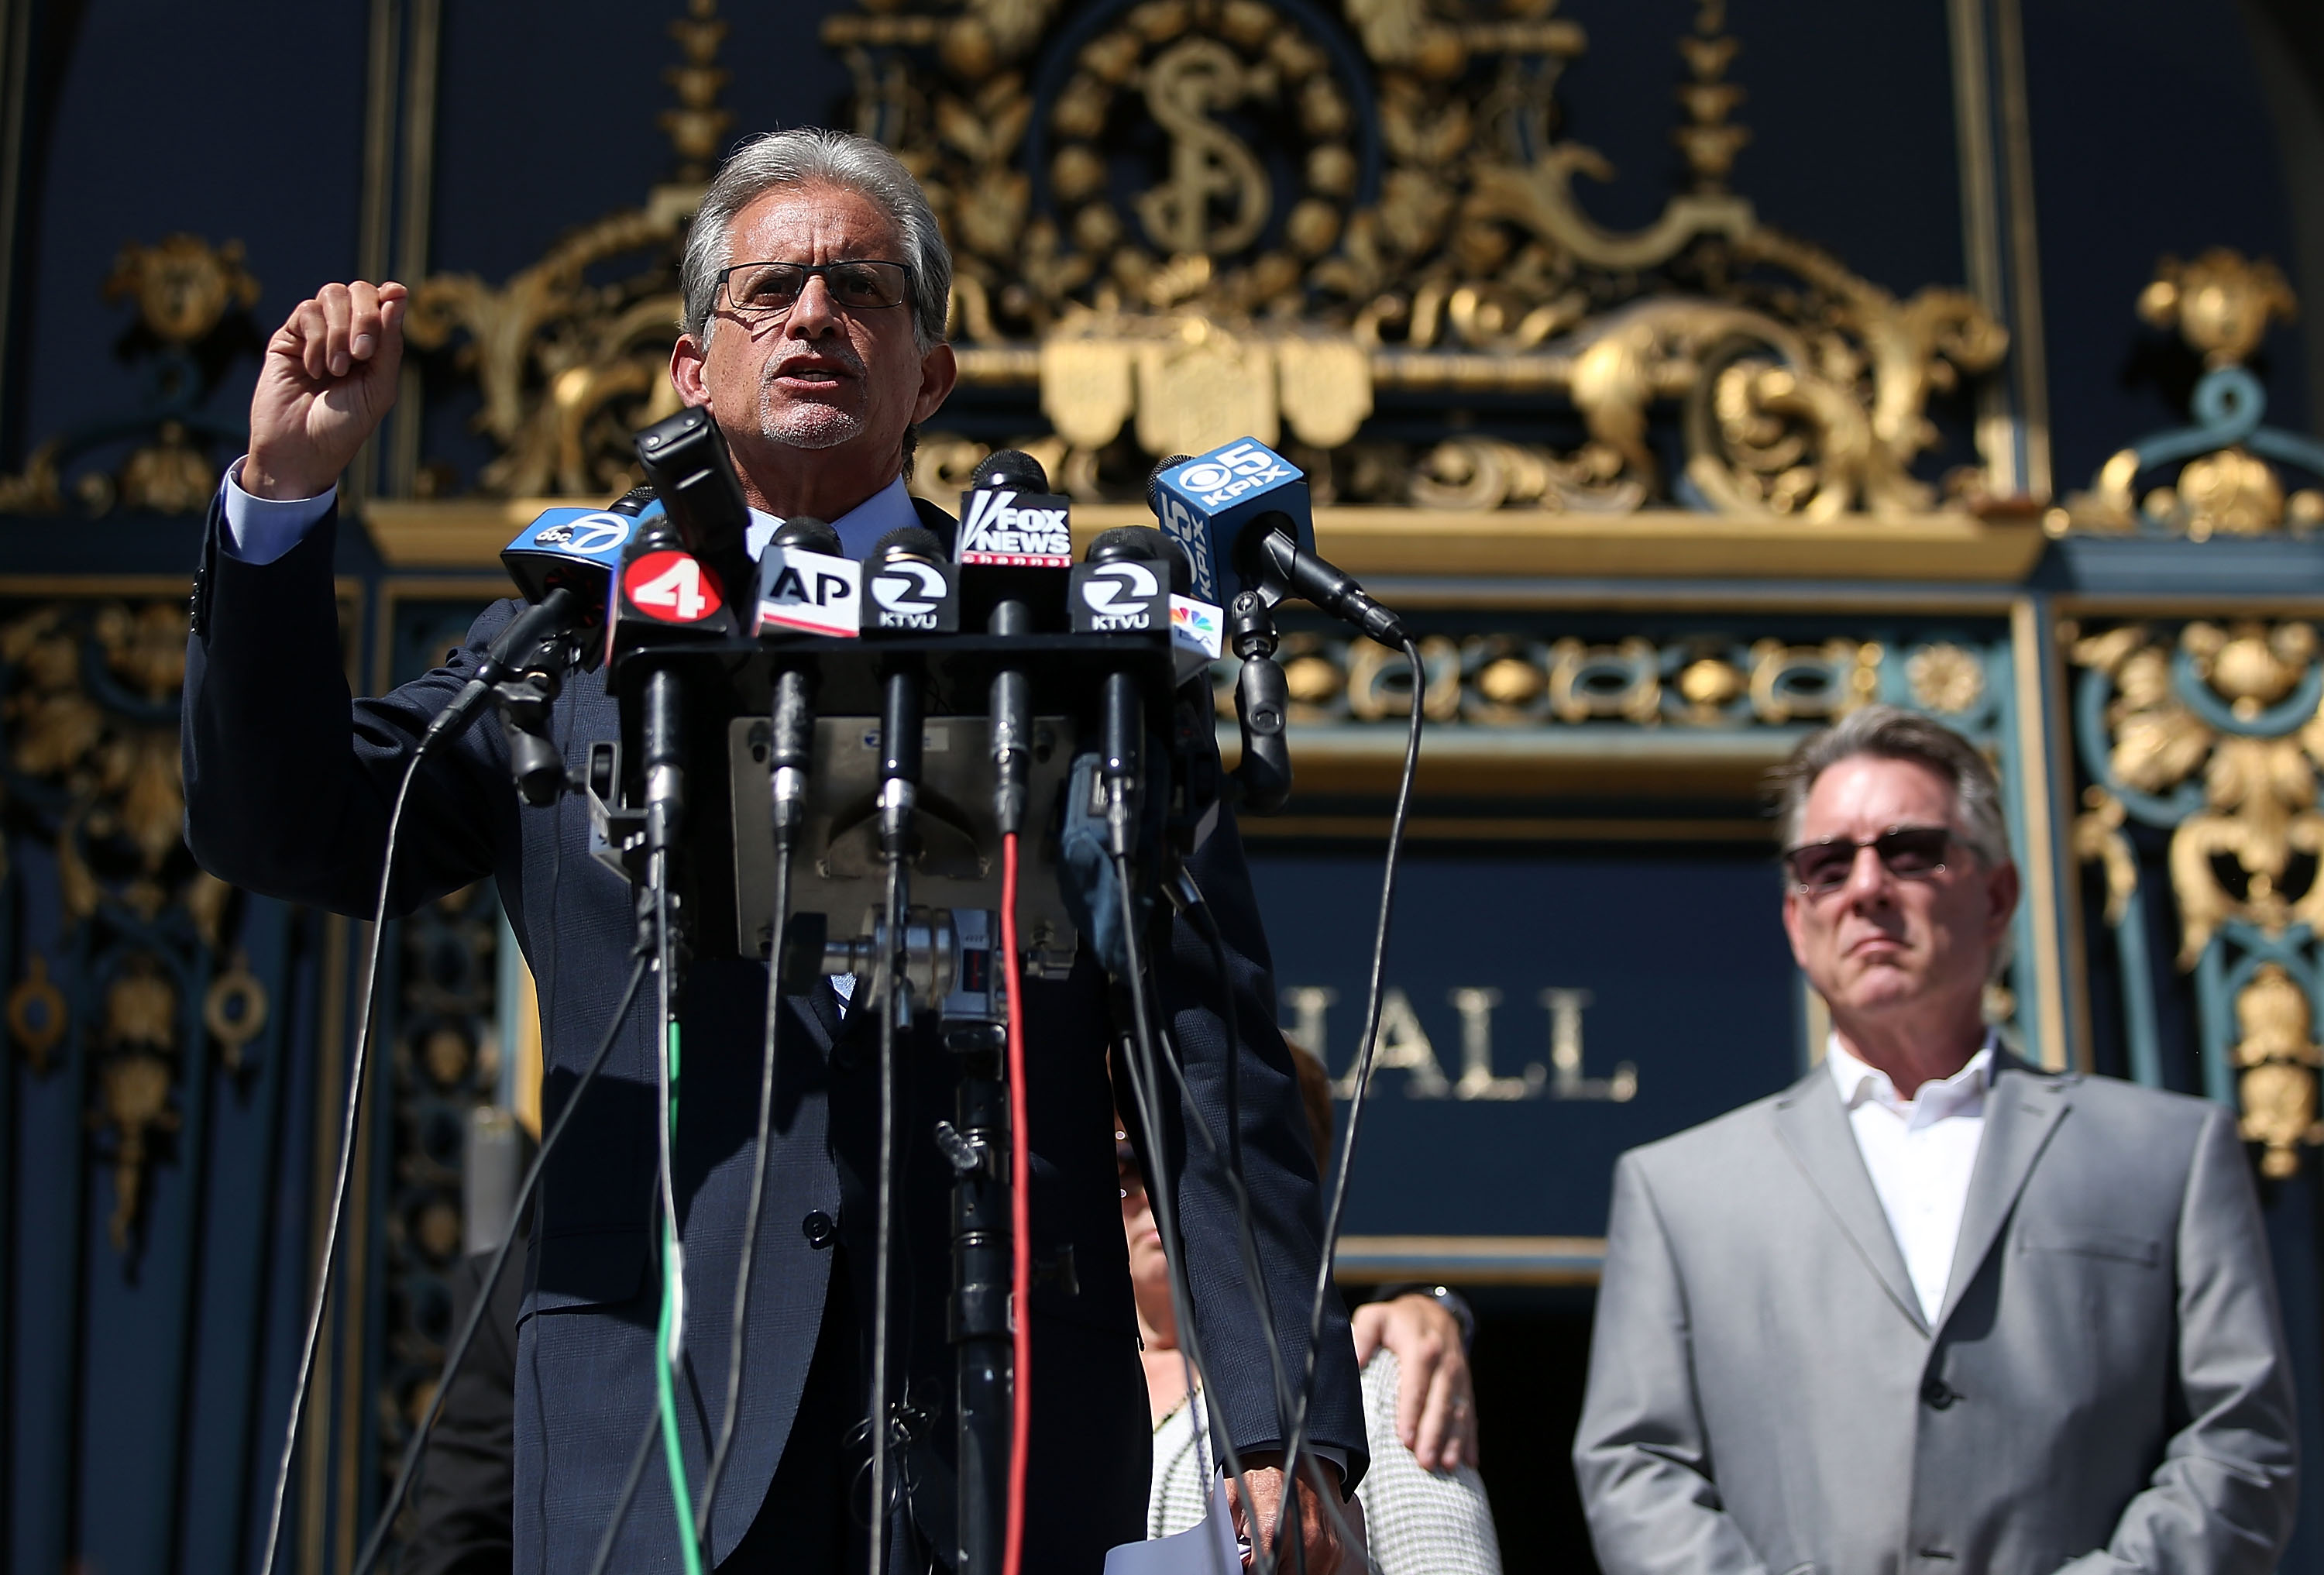 SAN FRANCISCO, CA - SEPTEMBER 01: Frank Pitre, attorney for the family of Kate Steinle who was killed by an undocumented immigrant, speaks during a news conference on September 1, 2015 in San Francisco, California. The family of Kate Steinle who was killed by an undocumented immigrant, have filed claims against San Francisco Sheriff Ross Mirkarimi, the Bureau of Land Management and Immigration and Customs Enforcement for their role in their daughter's death. (Photo by Justin Sullivan/Getty Images)